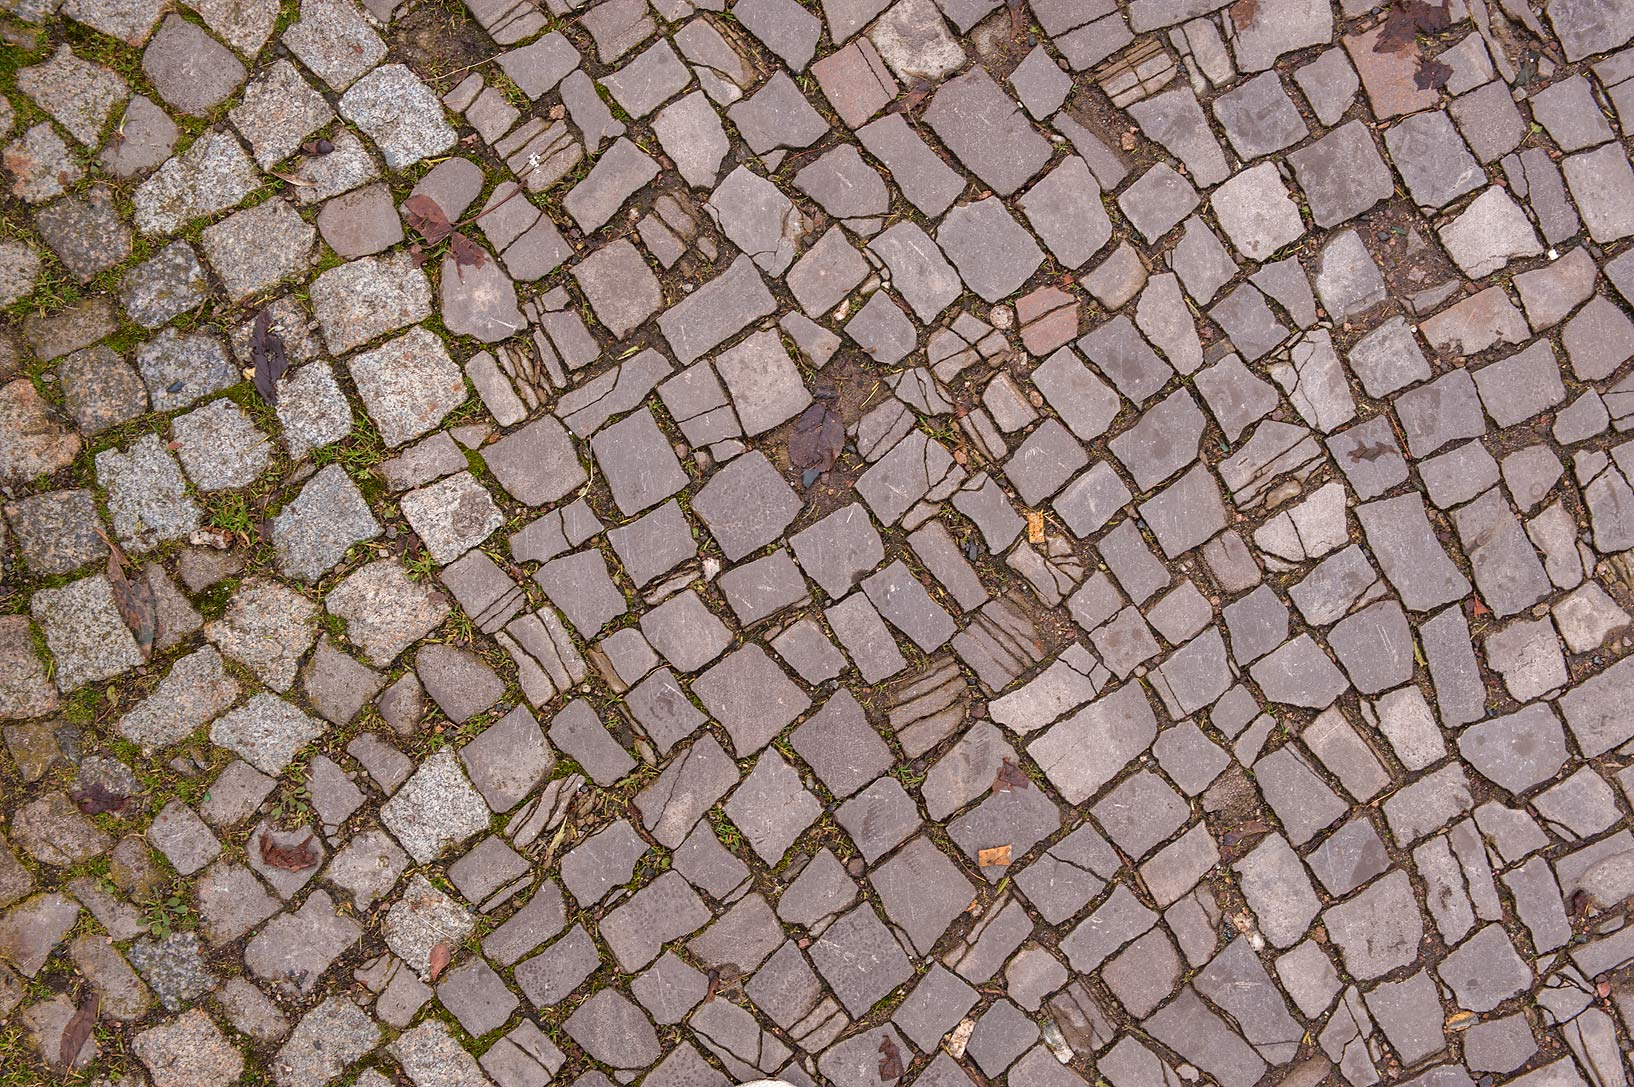 Street pavement in Old city. Eisenach, Germany